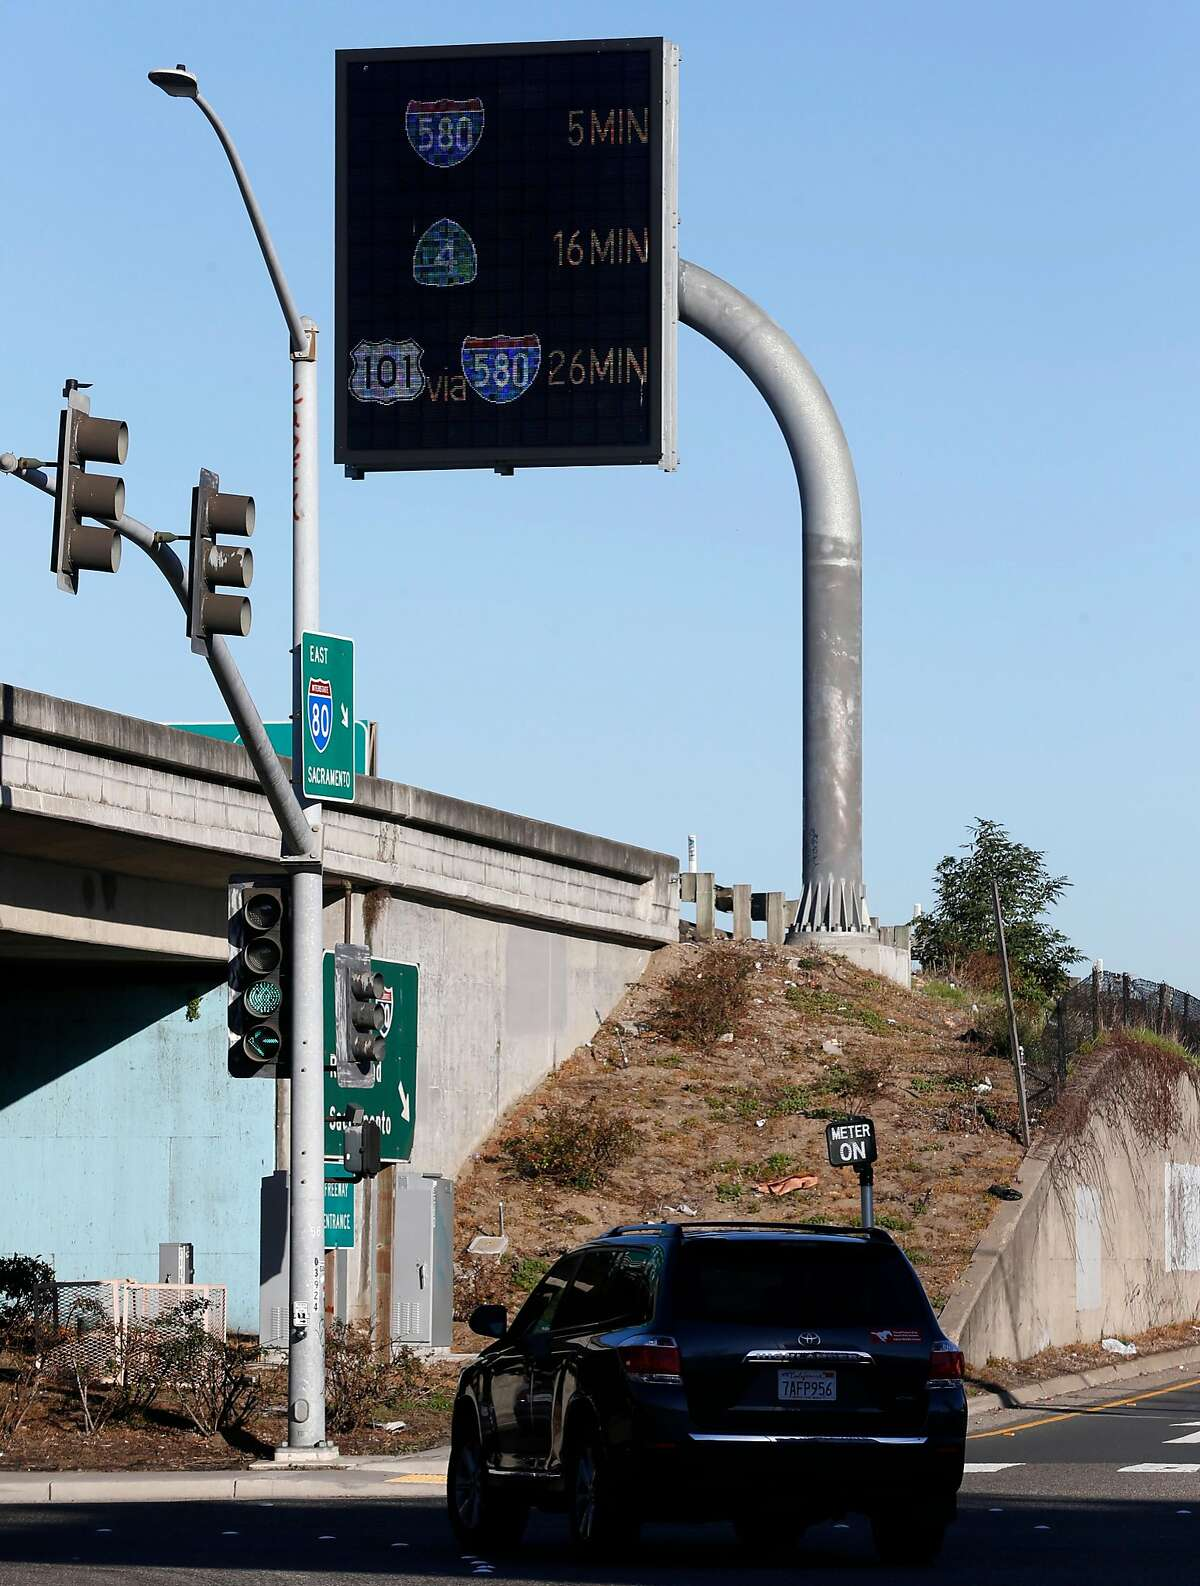 A large electronic message board displays travel times to freeway interchanges along eastbound Interstate 80 at Powell Street in Emeryville, Calif. on Wednesday, Feb. 7, 2018. The displays were installed as part of the I-80 Smart Corridor traffic management project installed by Caltrans.